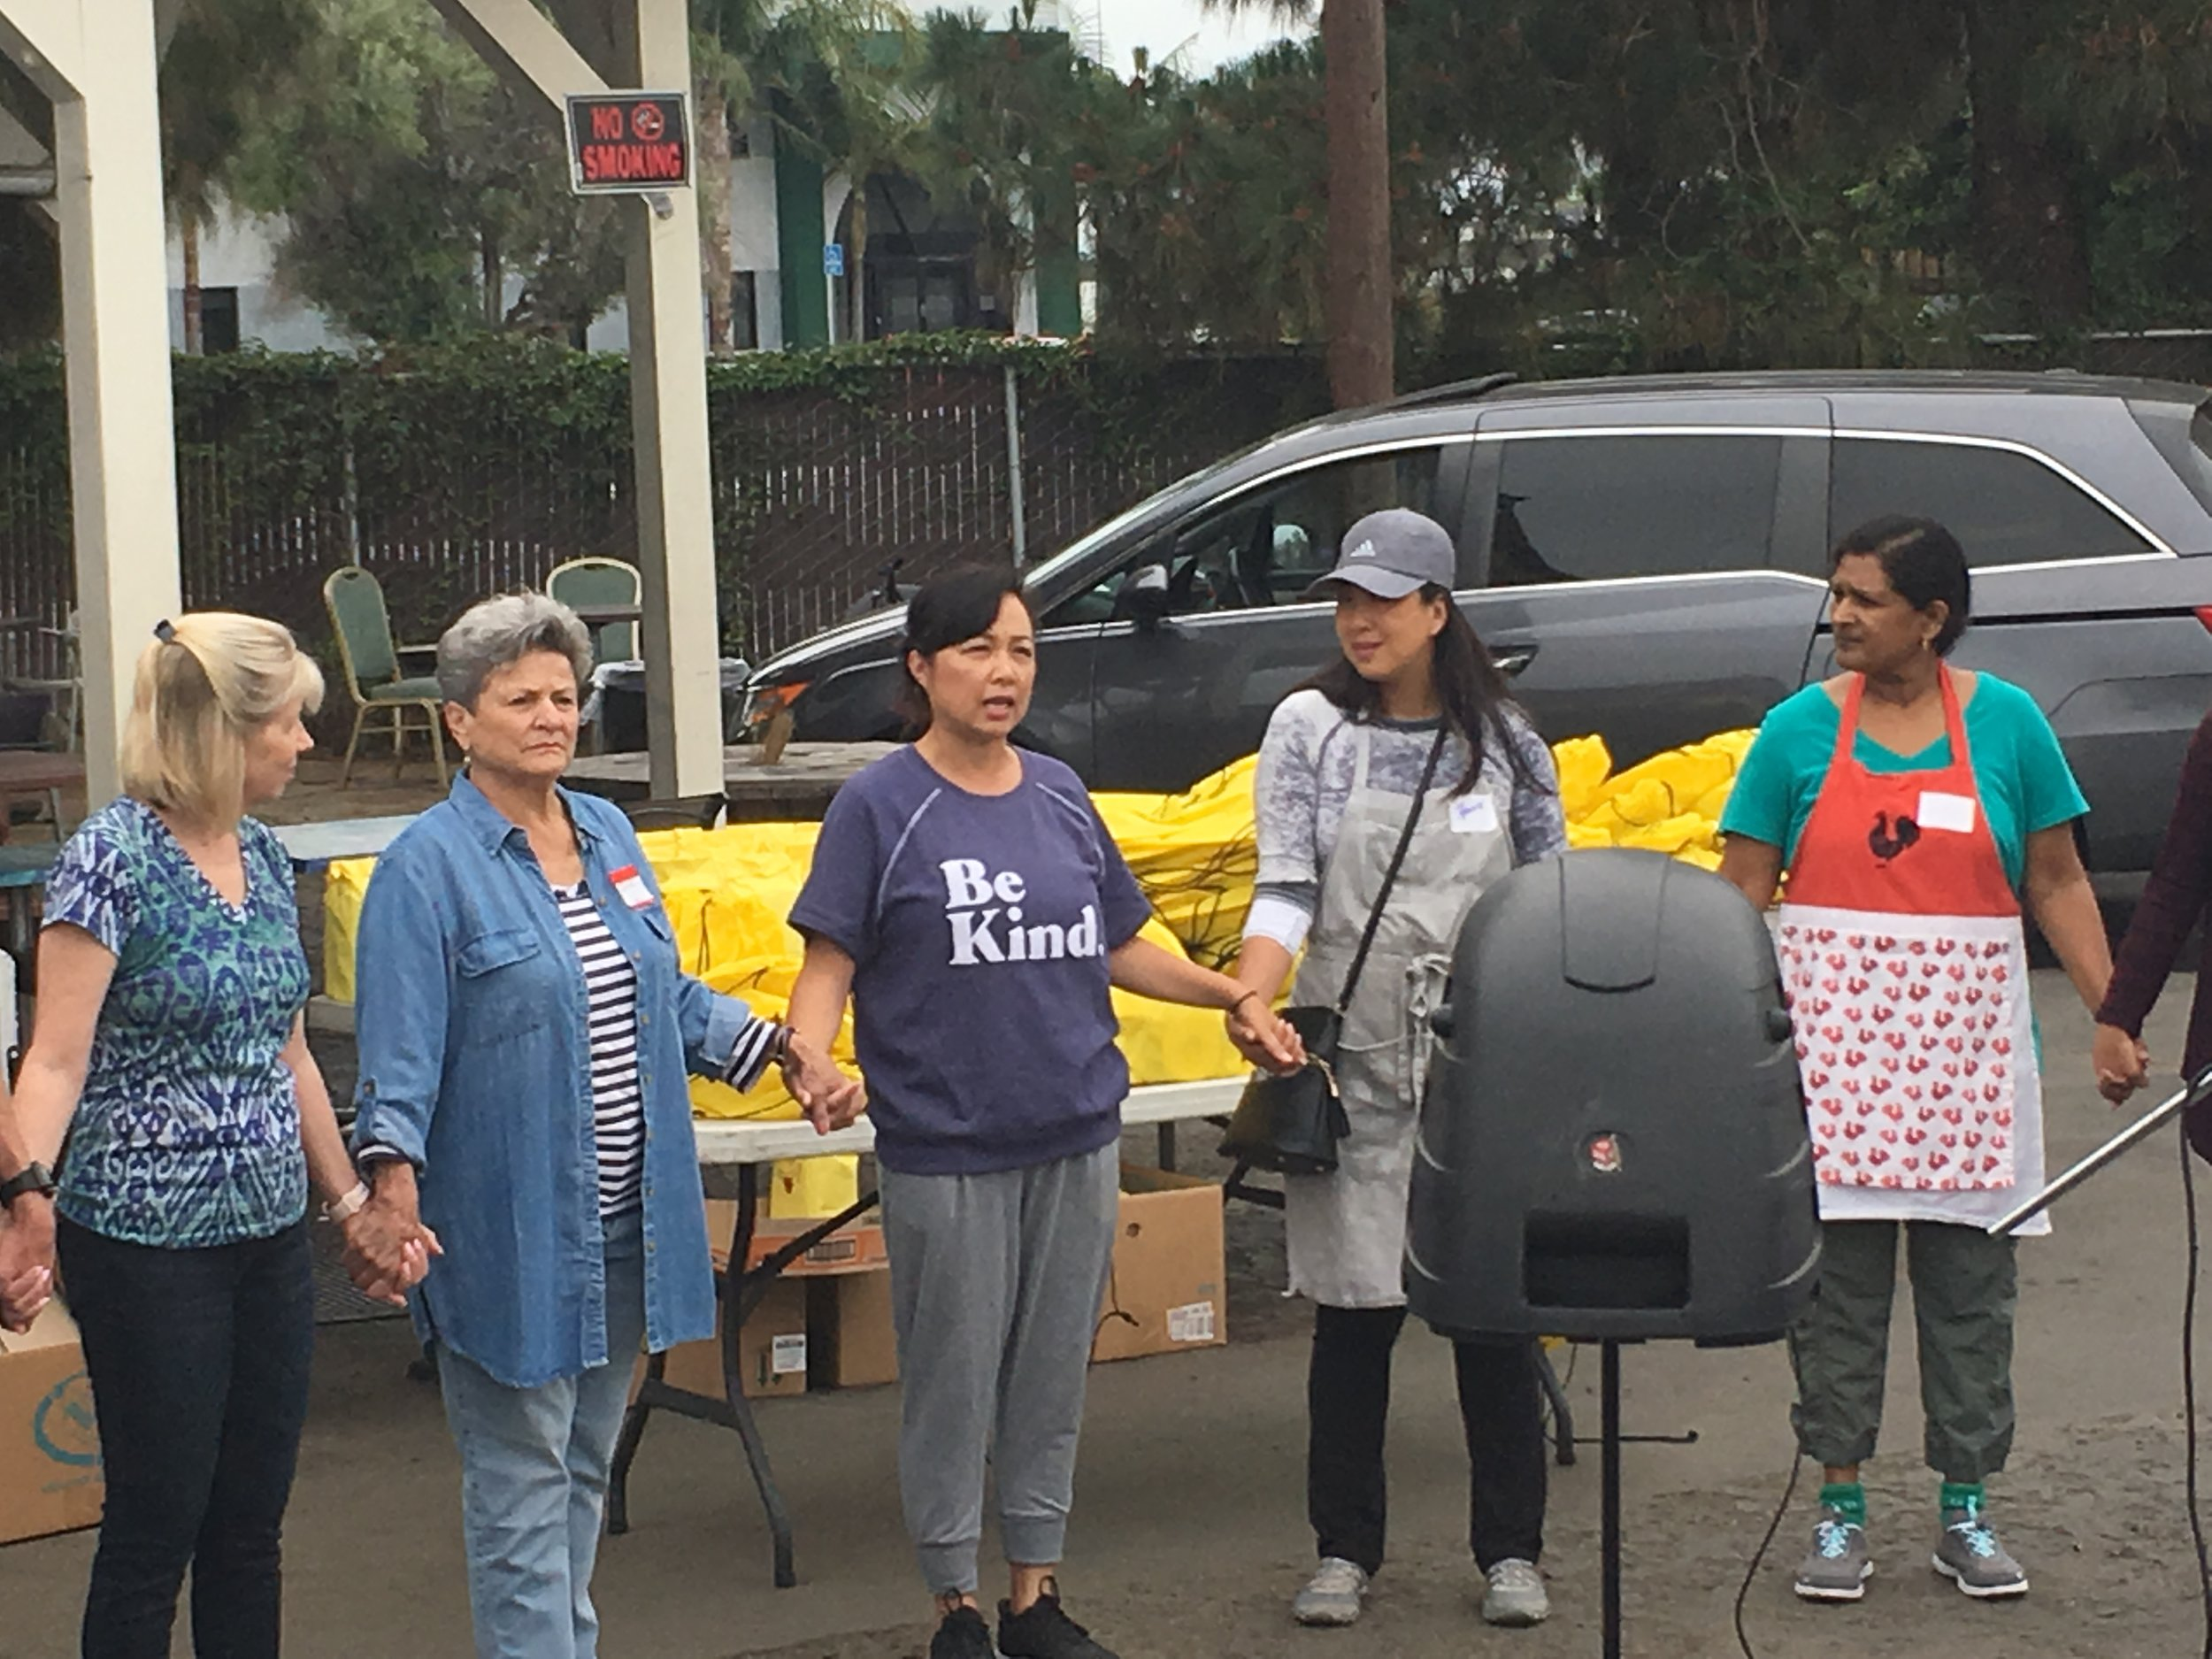 Jennifer Norseen (wearing the cap) and other volunteers gather to pray as they serve at Mary's Kitchen, filling bags with emergency food and personal toiletries provided by Operation Be Kind.